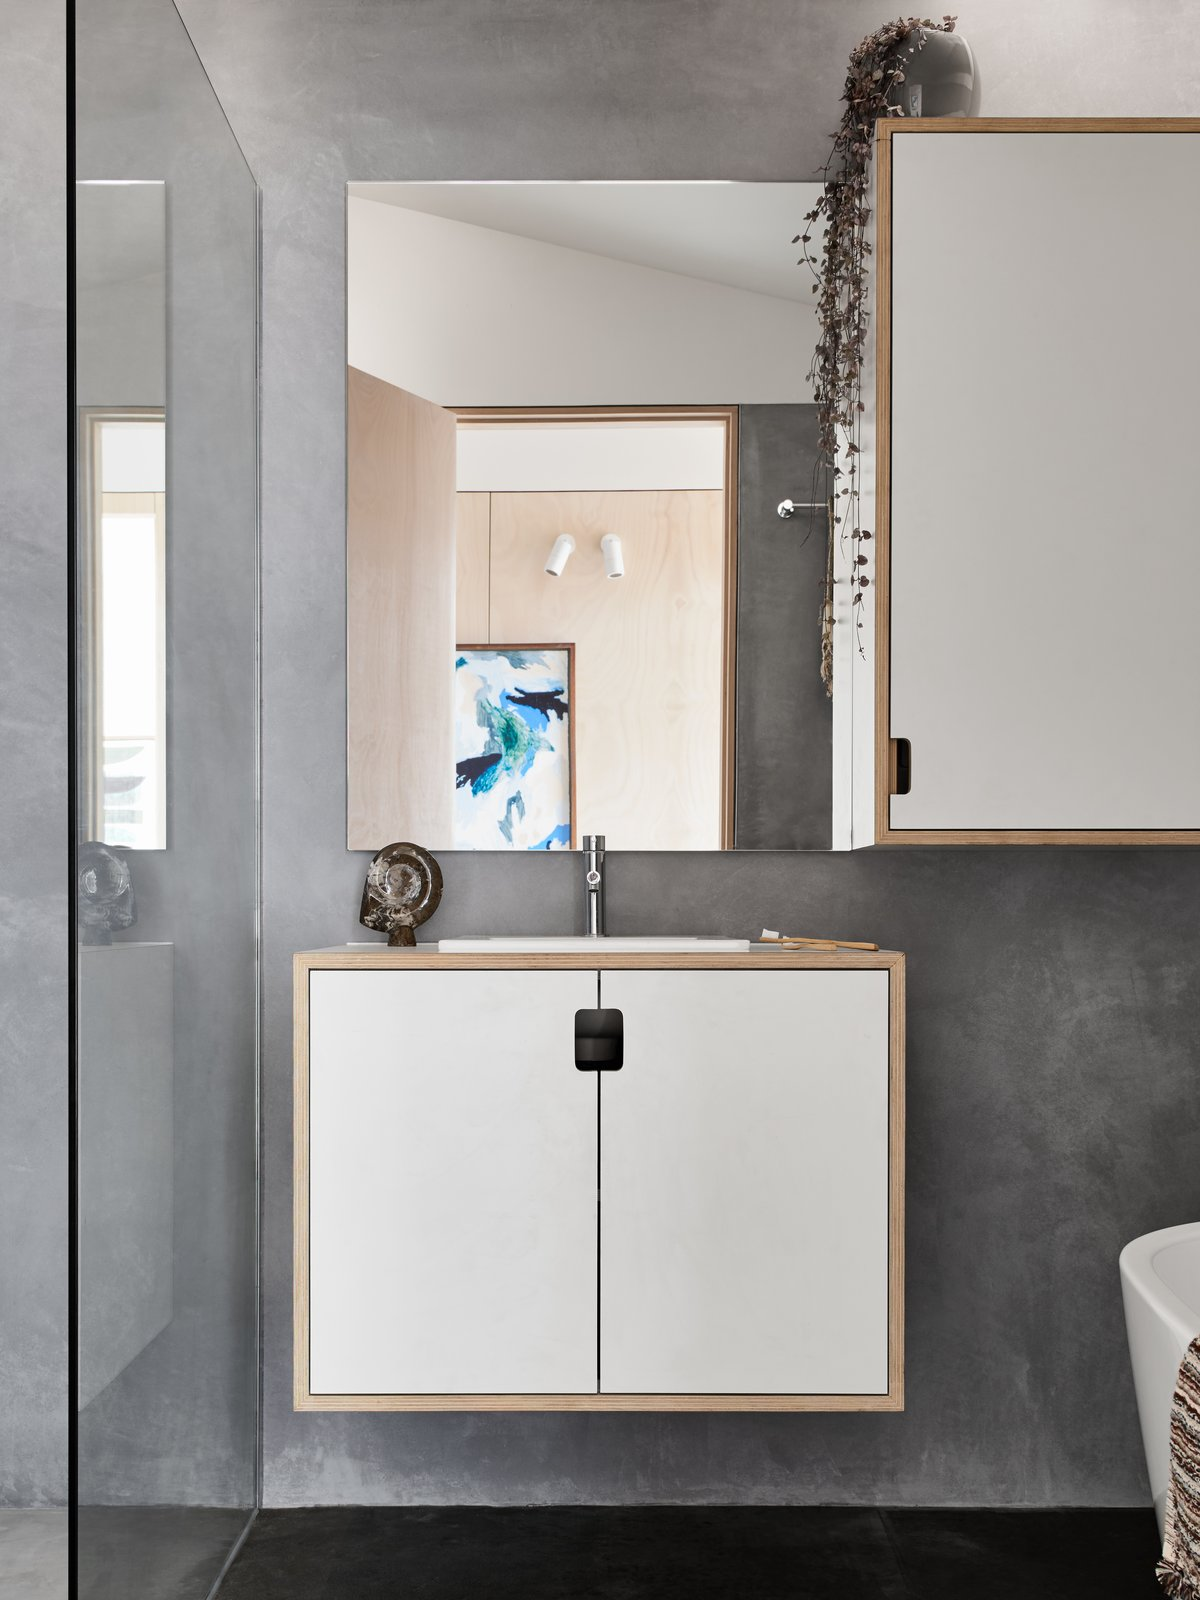 Bath Room, Concrete Floor, Wood Counter, Drop In Sink, Concrete Wall, and One Piece Toilet Main bathroom featuring natural, non-toxic marrakech render on walls and wet areas.  The 10 Star Home by The Sociable Weaver